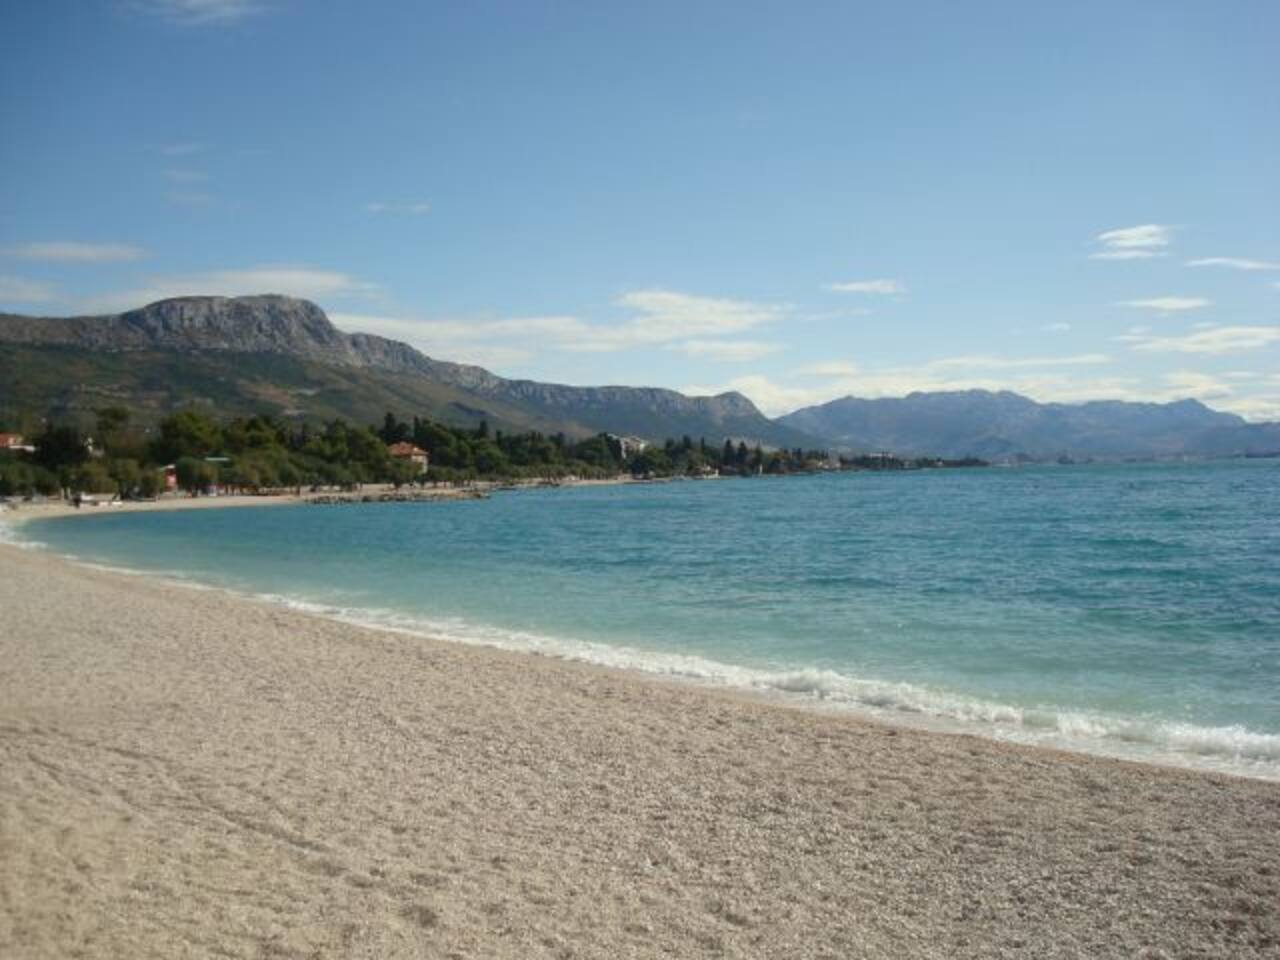 This beautiful pebble beach is only a few minutes away!  Enjoy the clear blue water and stunning view of the Kozjak mountain!